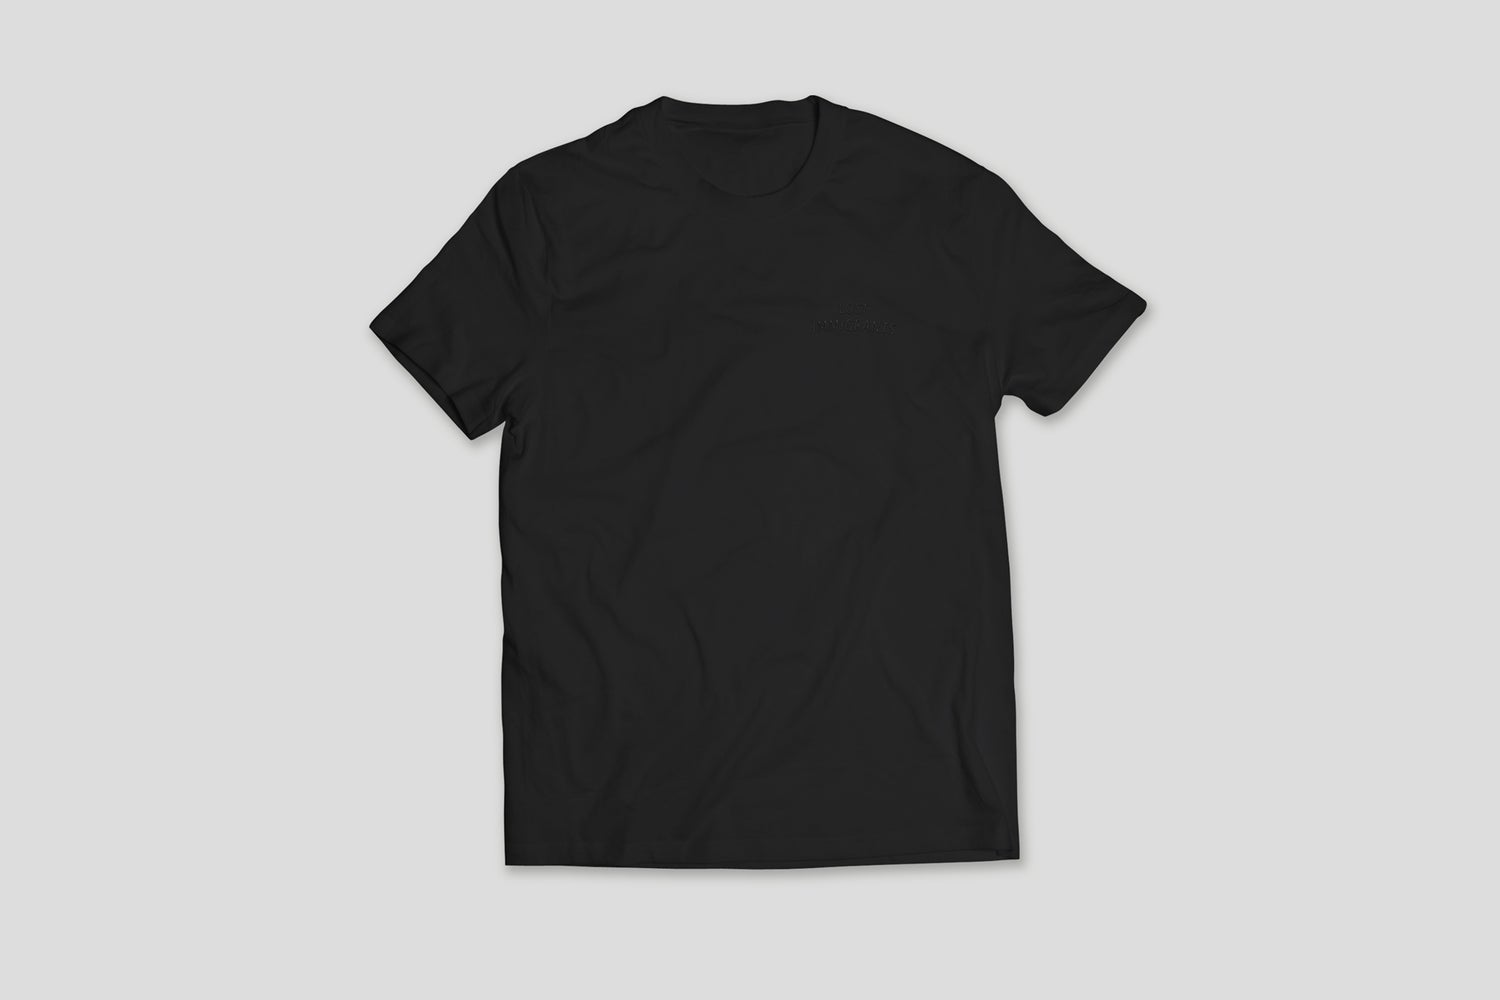 Image of Black Embroidered Tee